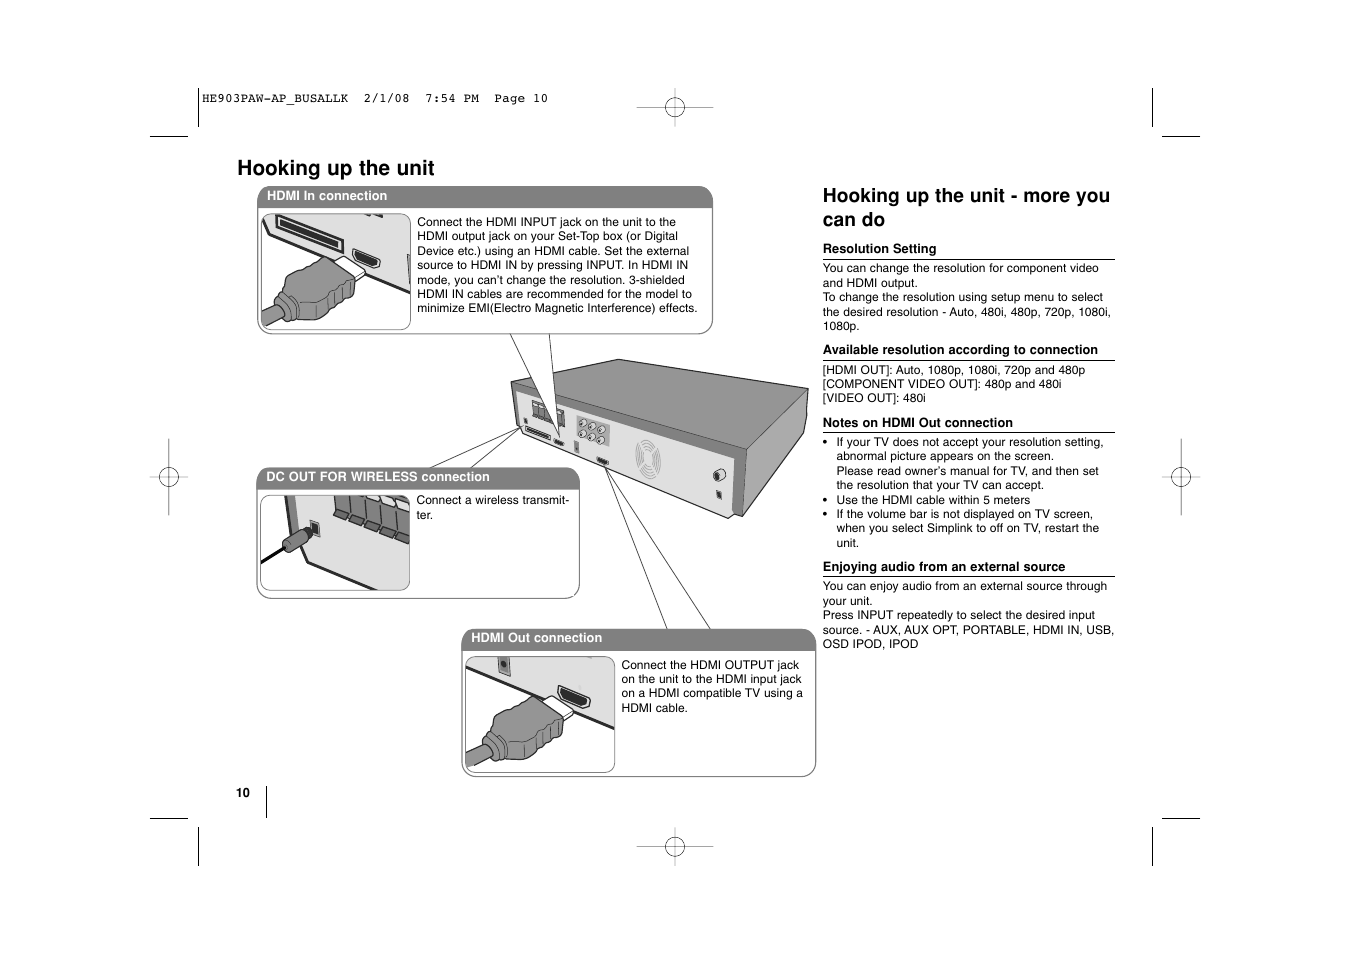 hight resolution of hooking up the unit hooking up the unit more you can do lg lht874 user manual page 10 28